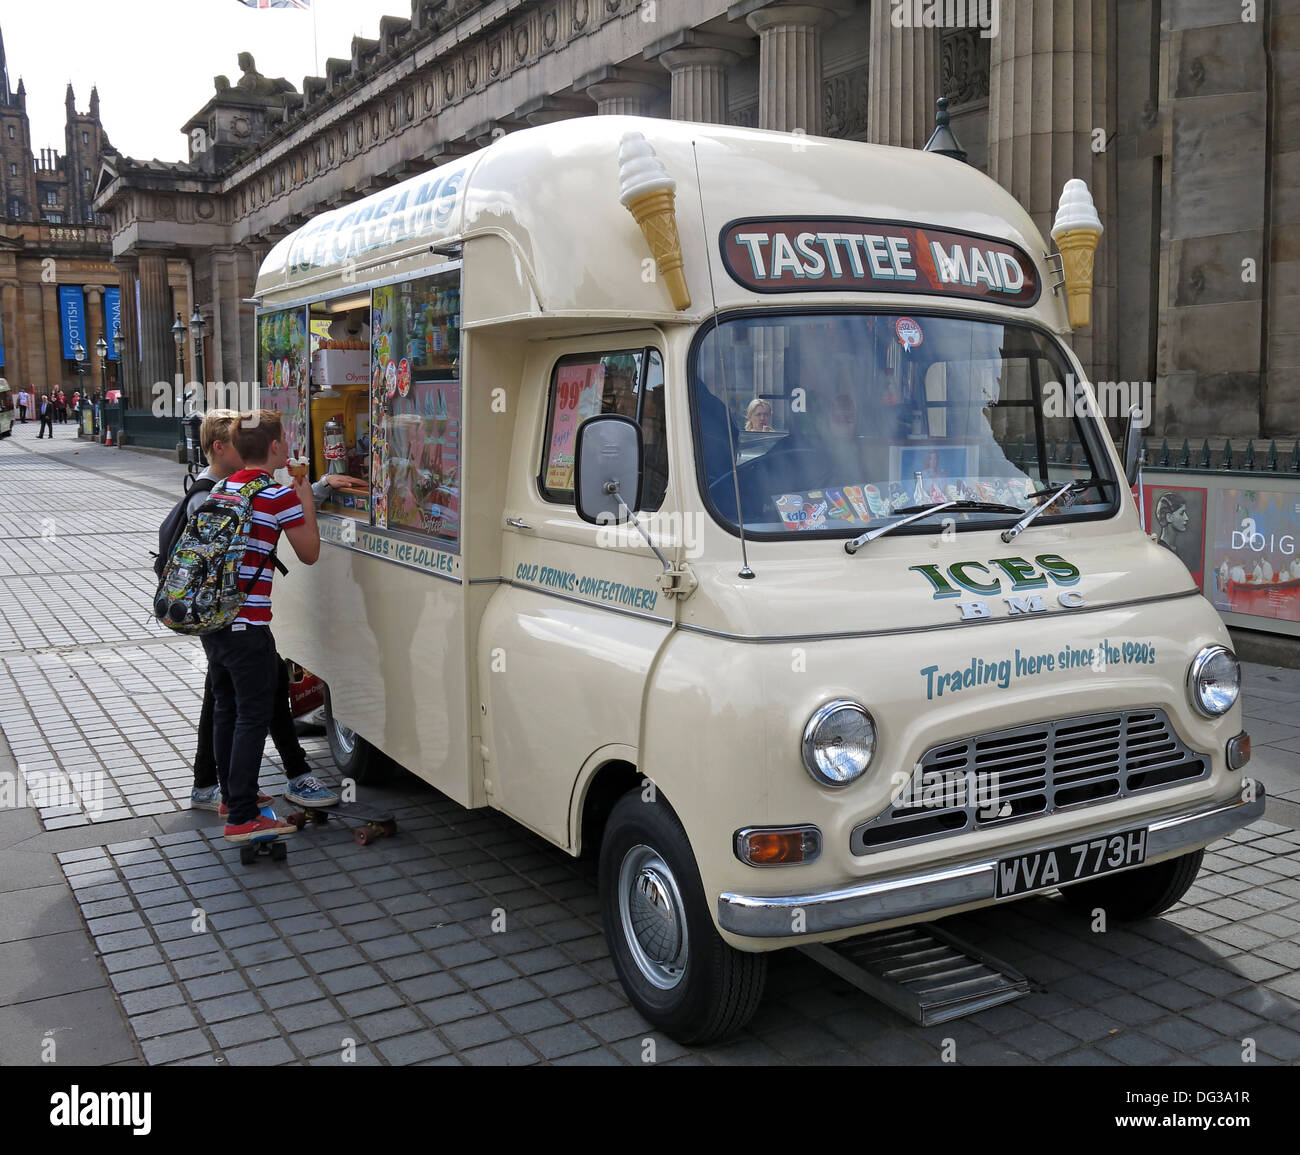 Classic creme coloured Tasttee Maid ice cream van from the 1960s in Edinburgh city centre Scotland UK 2013 - Stock Image